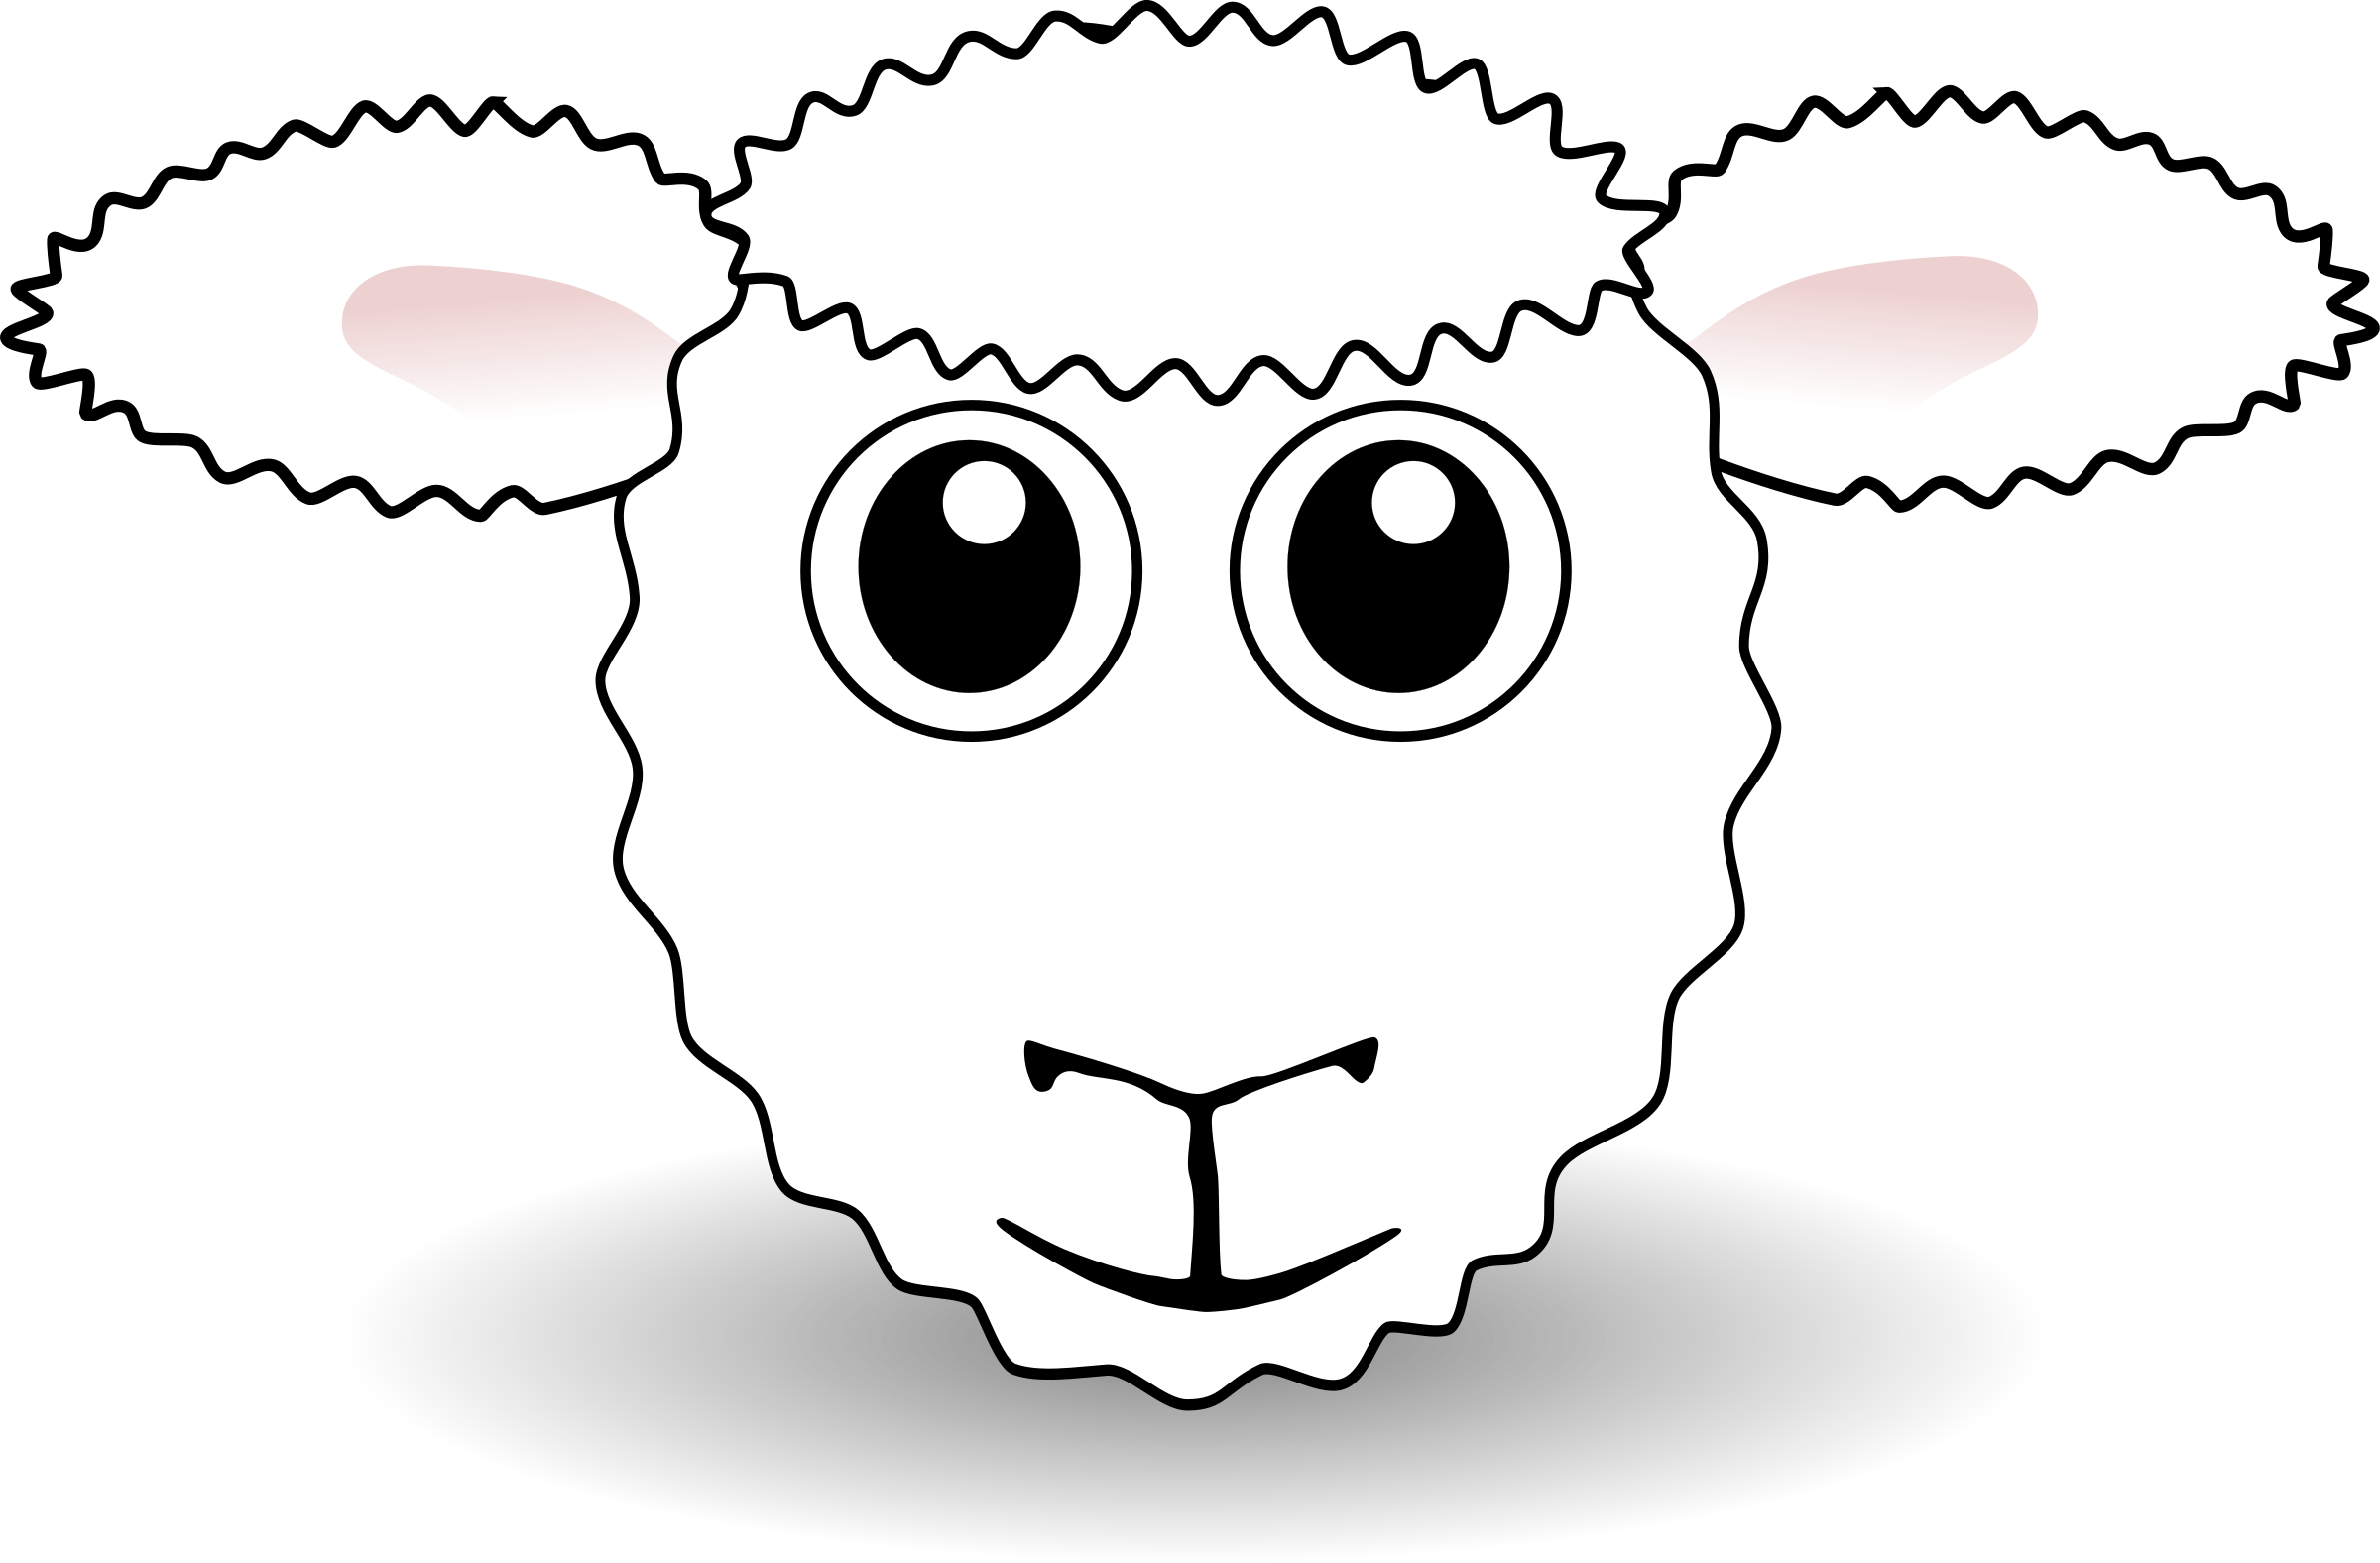 Funny Sheep Face White Cartoon by palomaironique